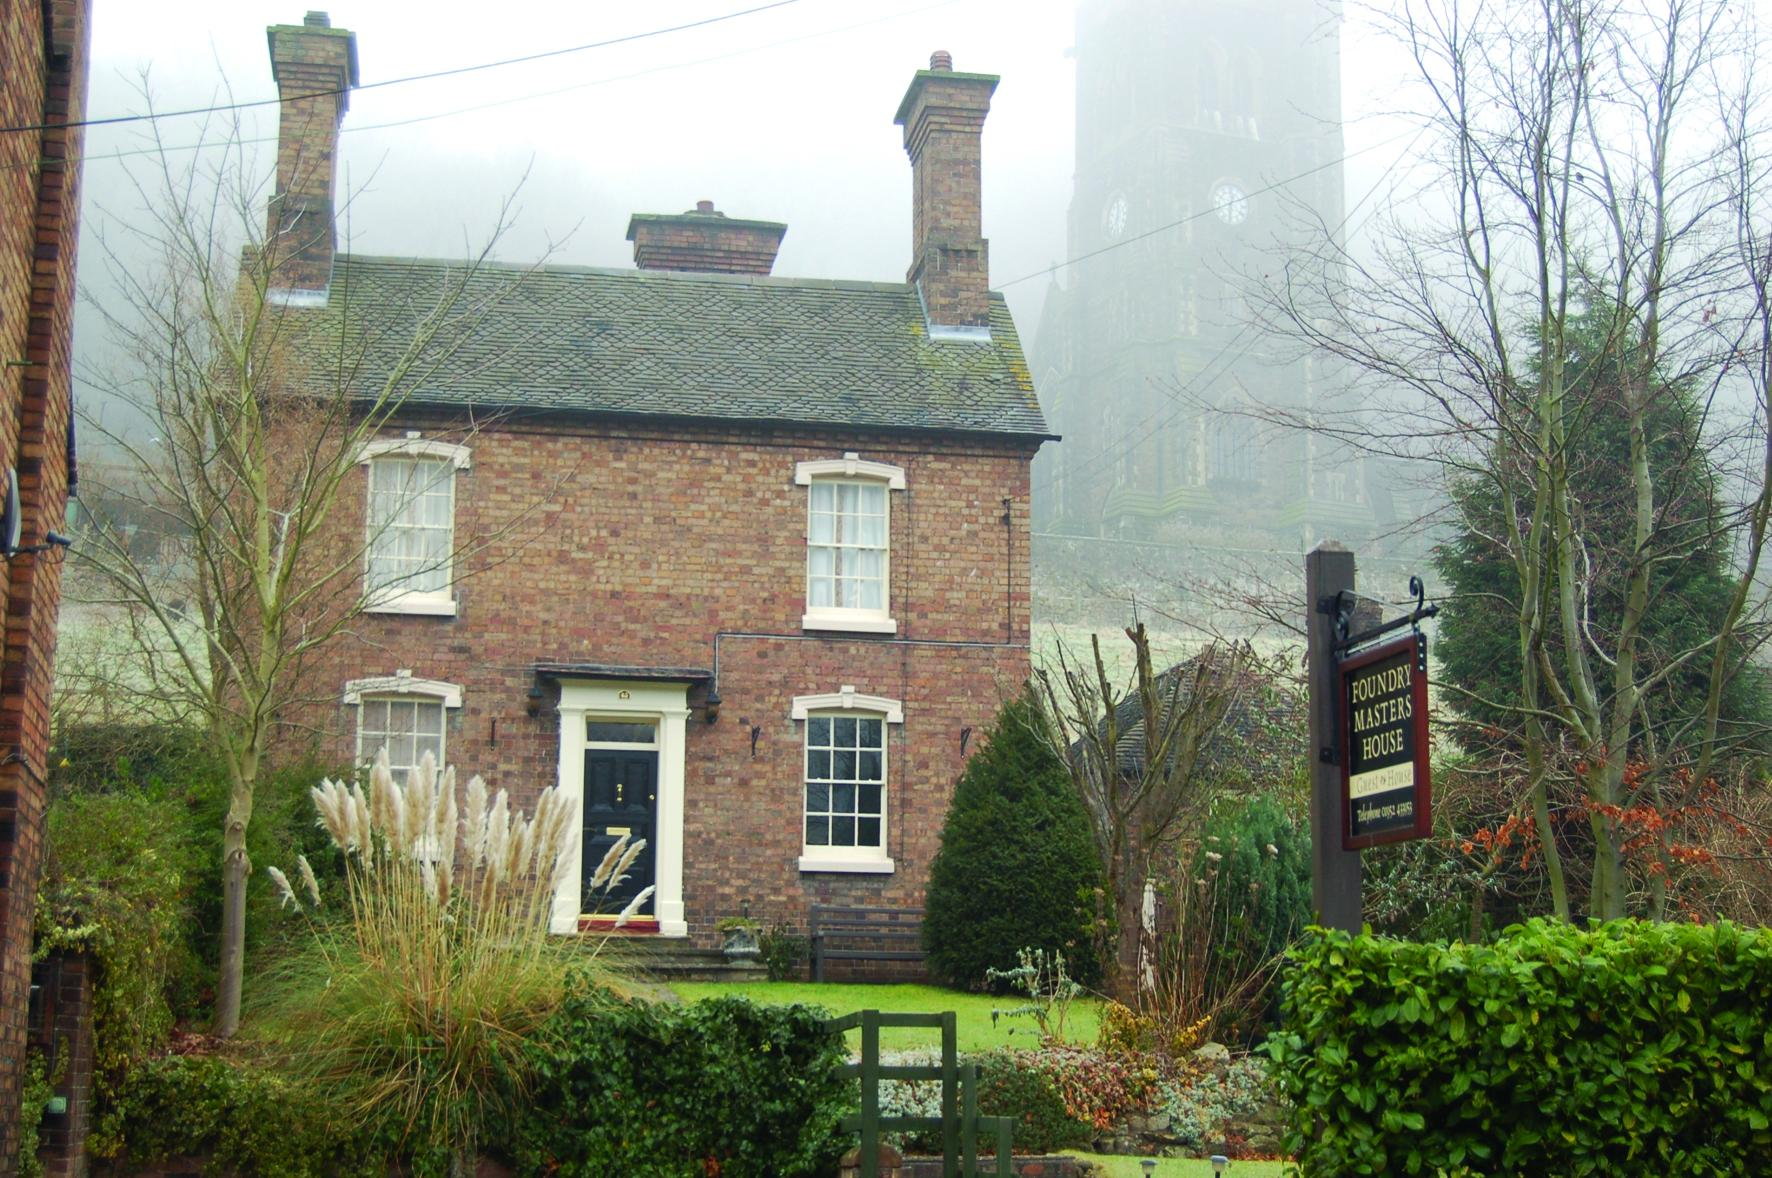 Foundry Masters House